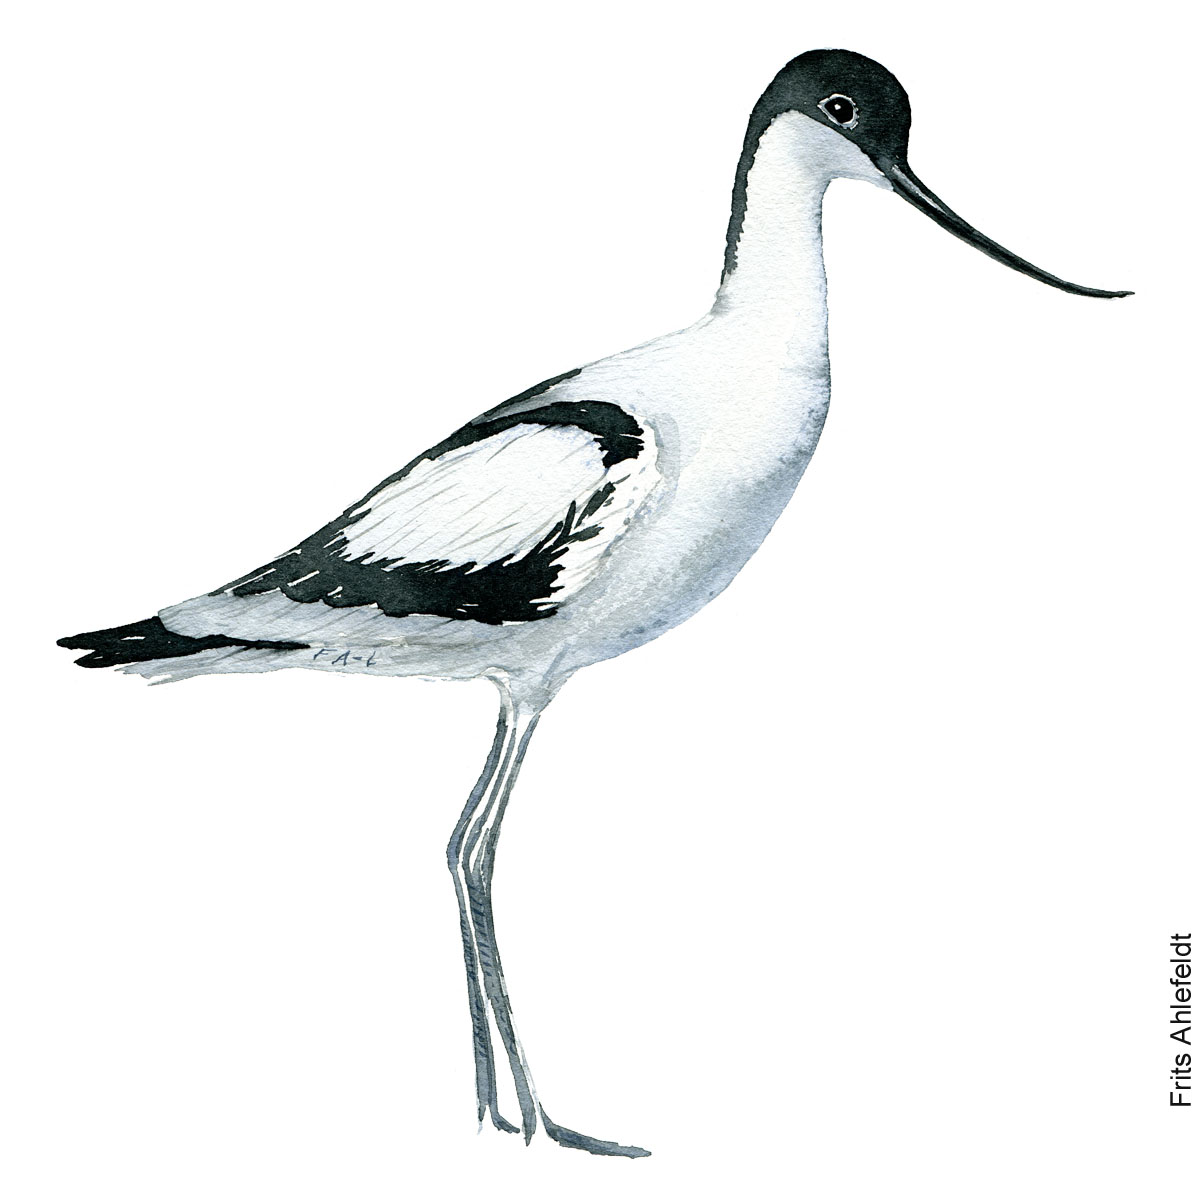 Watercolour illustration The Pied Avocet wading bird (Recurvirostra avosetta) - Klyde. By Frits Ahlefeldt